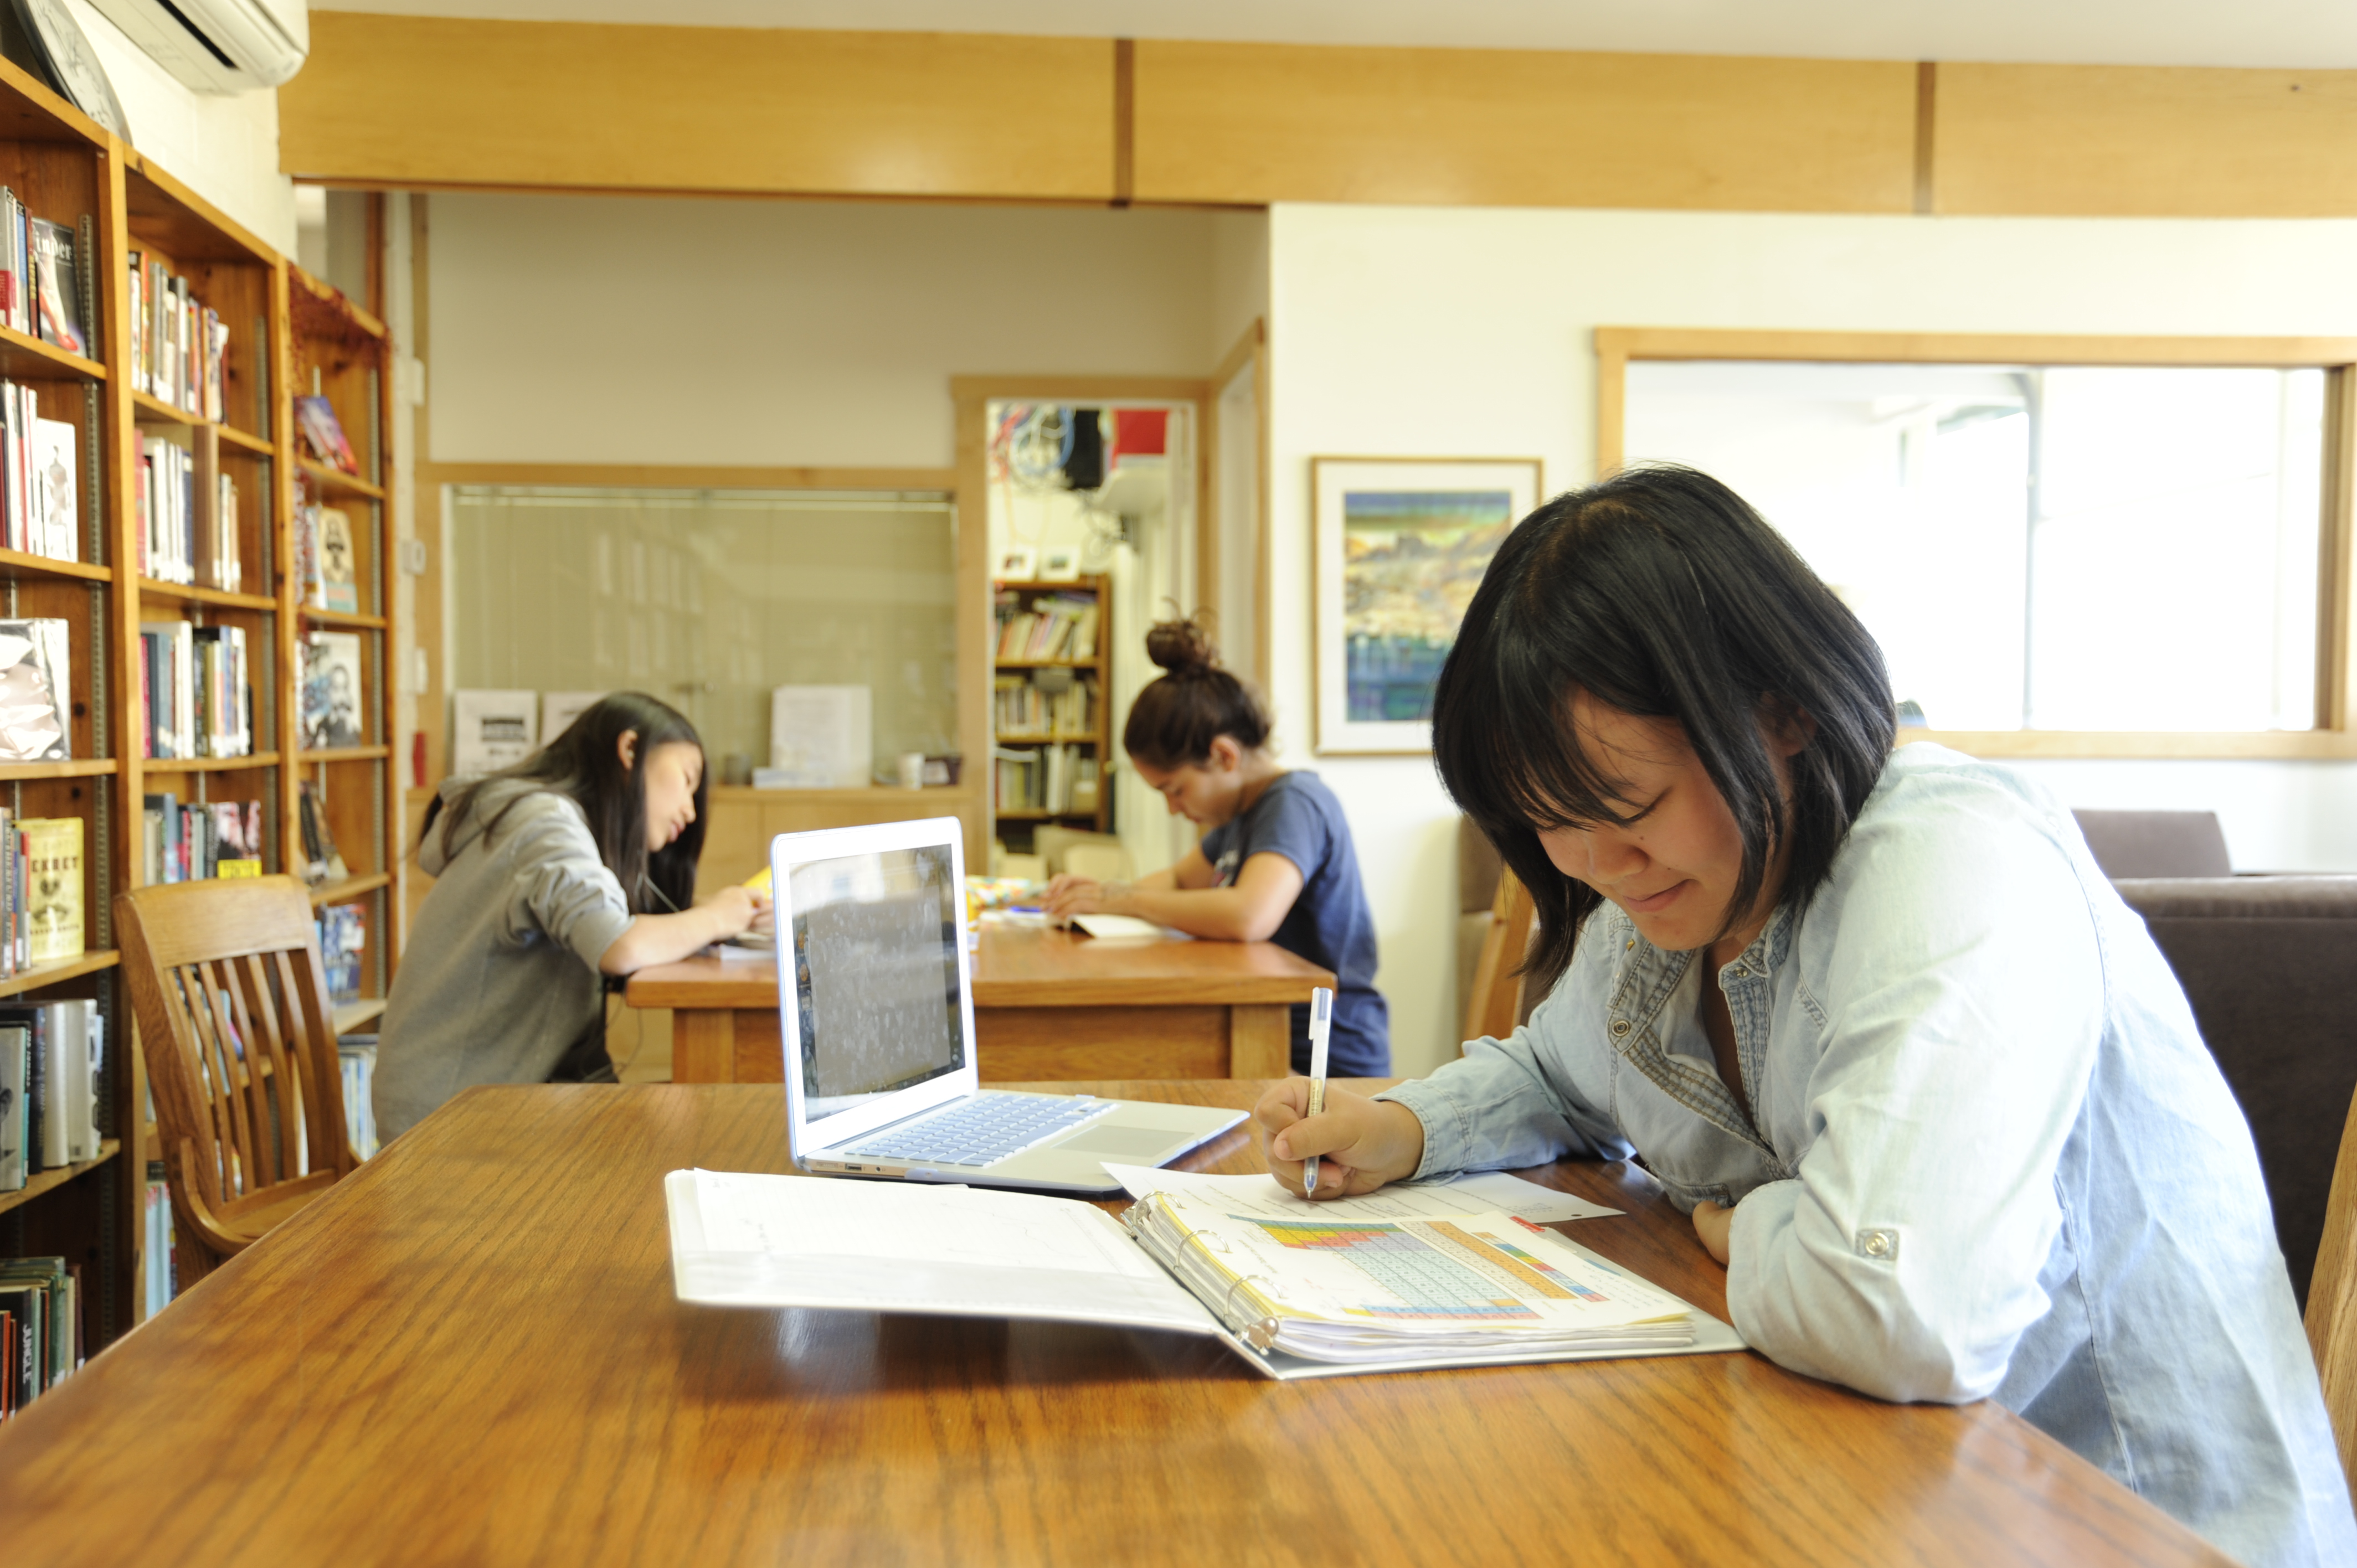 Students Prep for Final Exams